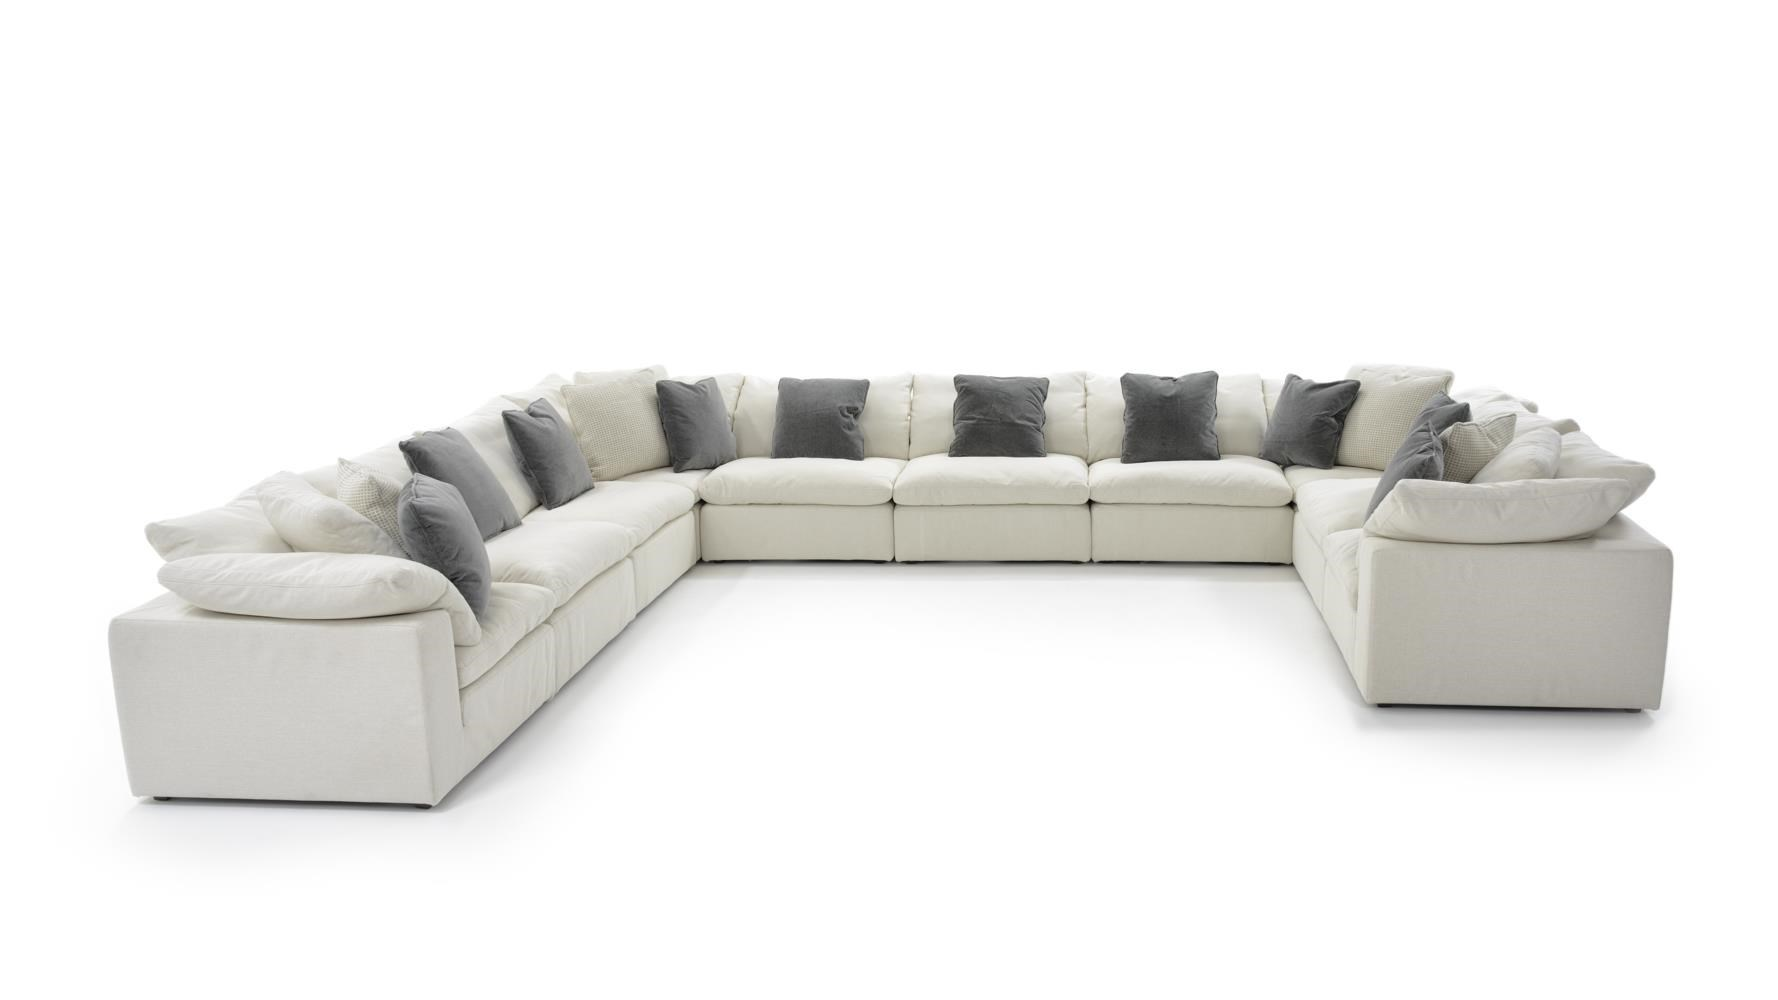 ashley furniture palmer sofa leather sets on sale 10 pc sectional gradschoolfairs